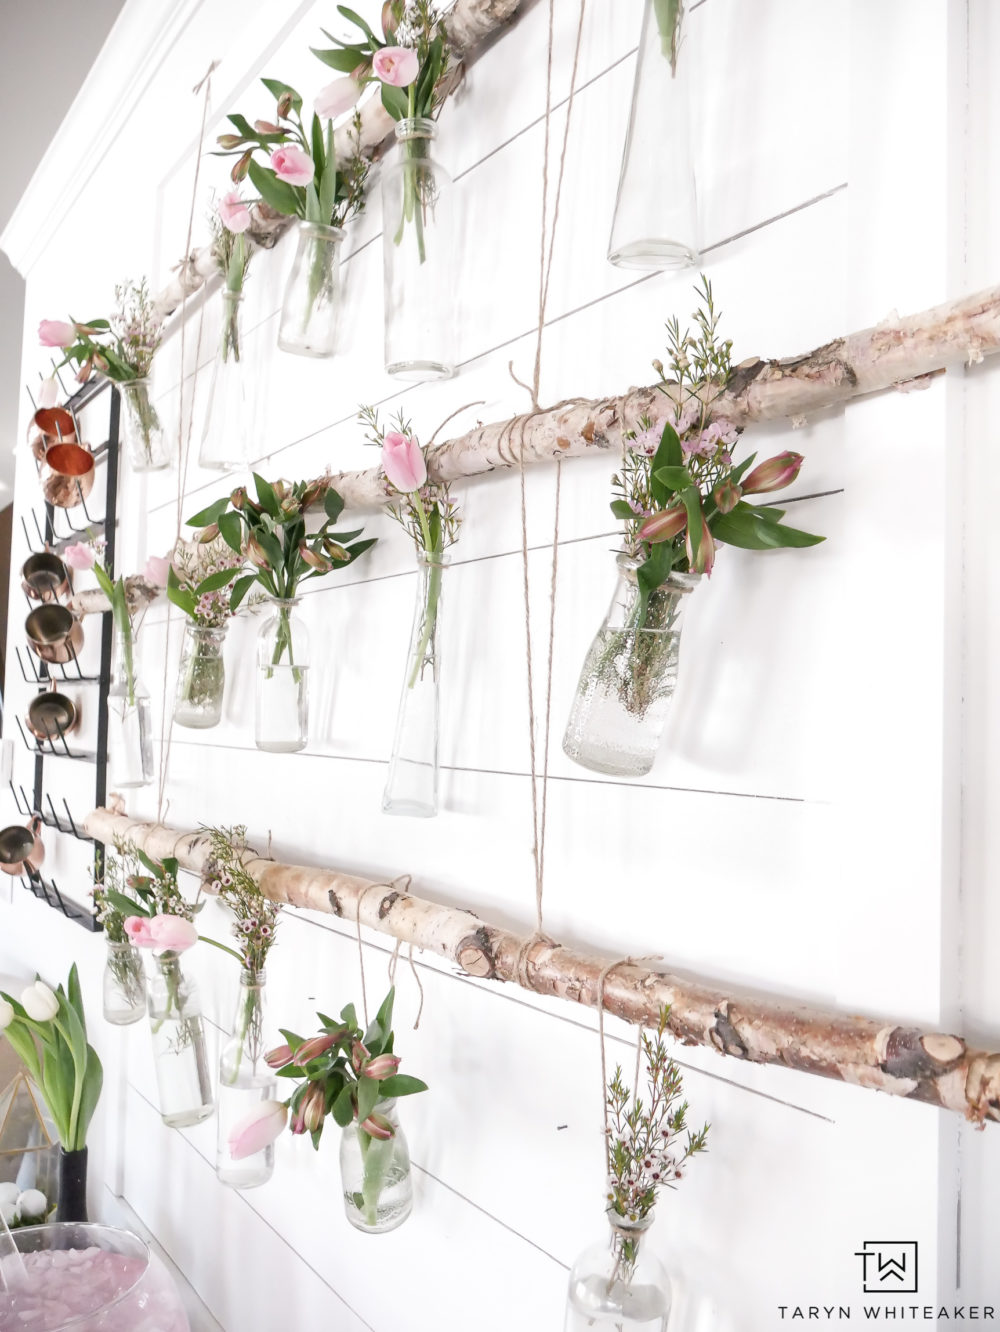 Easily create this Hanging Branch Display with fresh garden flowers for your next spring party!